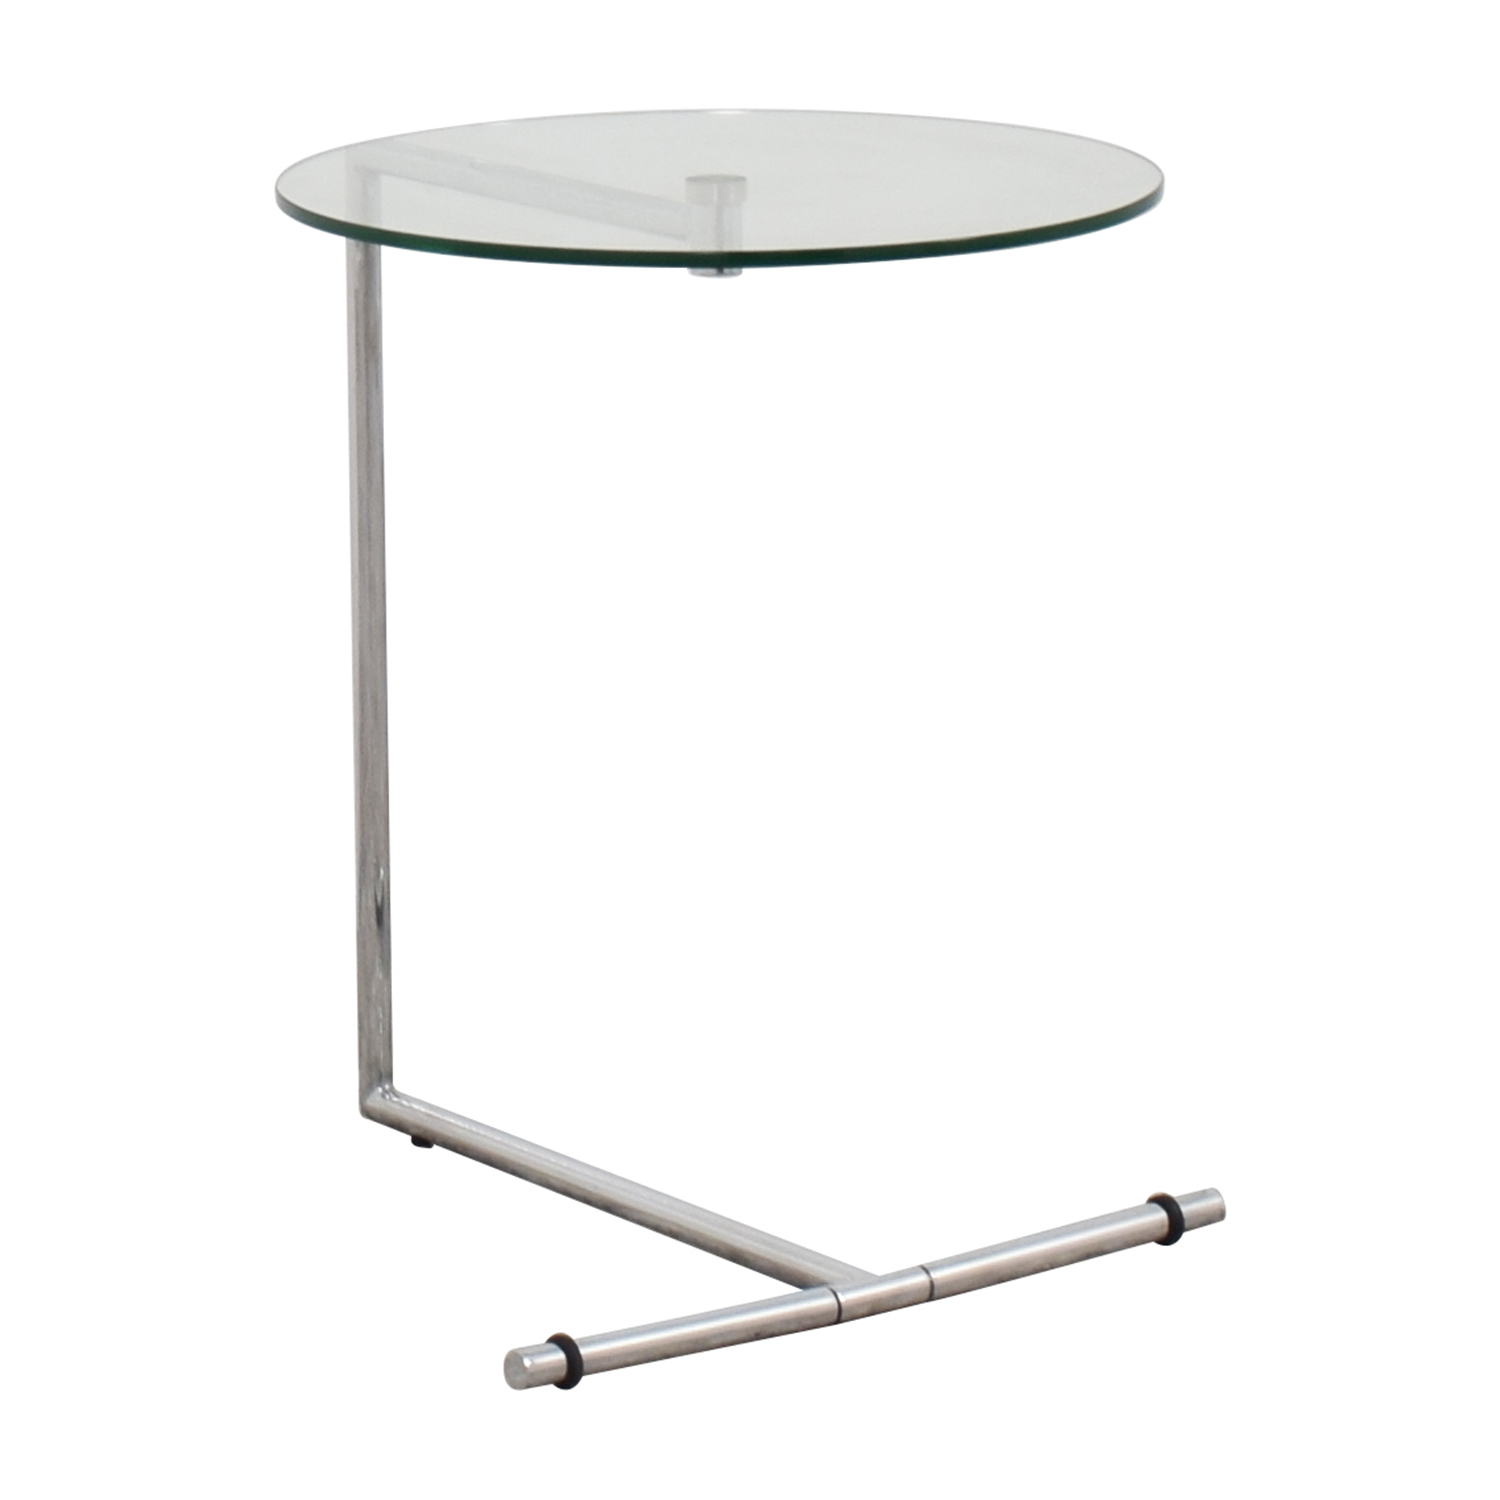 87 Off Z Gallerie Z Gallerie Glass And Metal Side Table